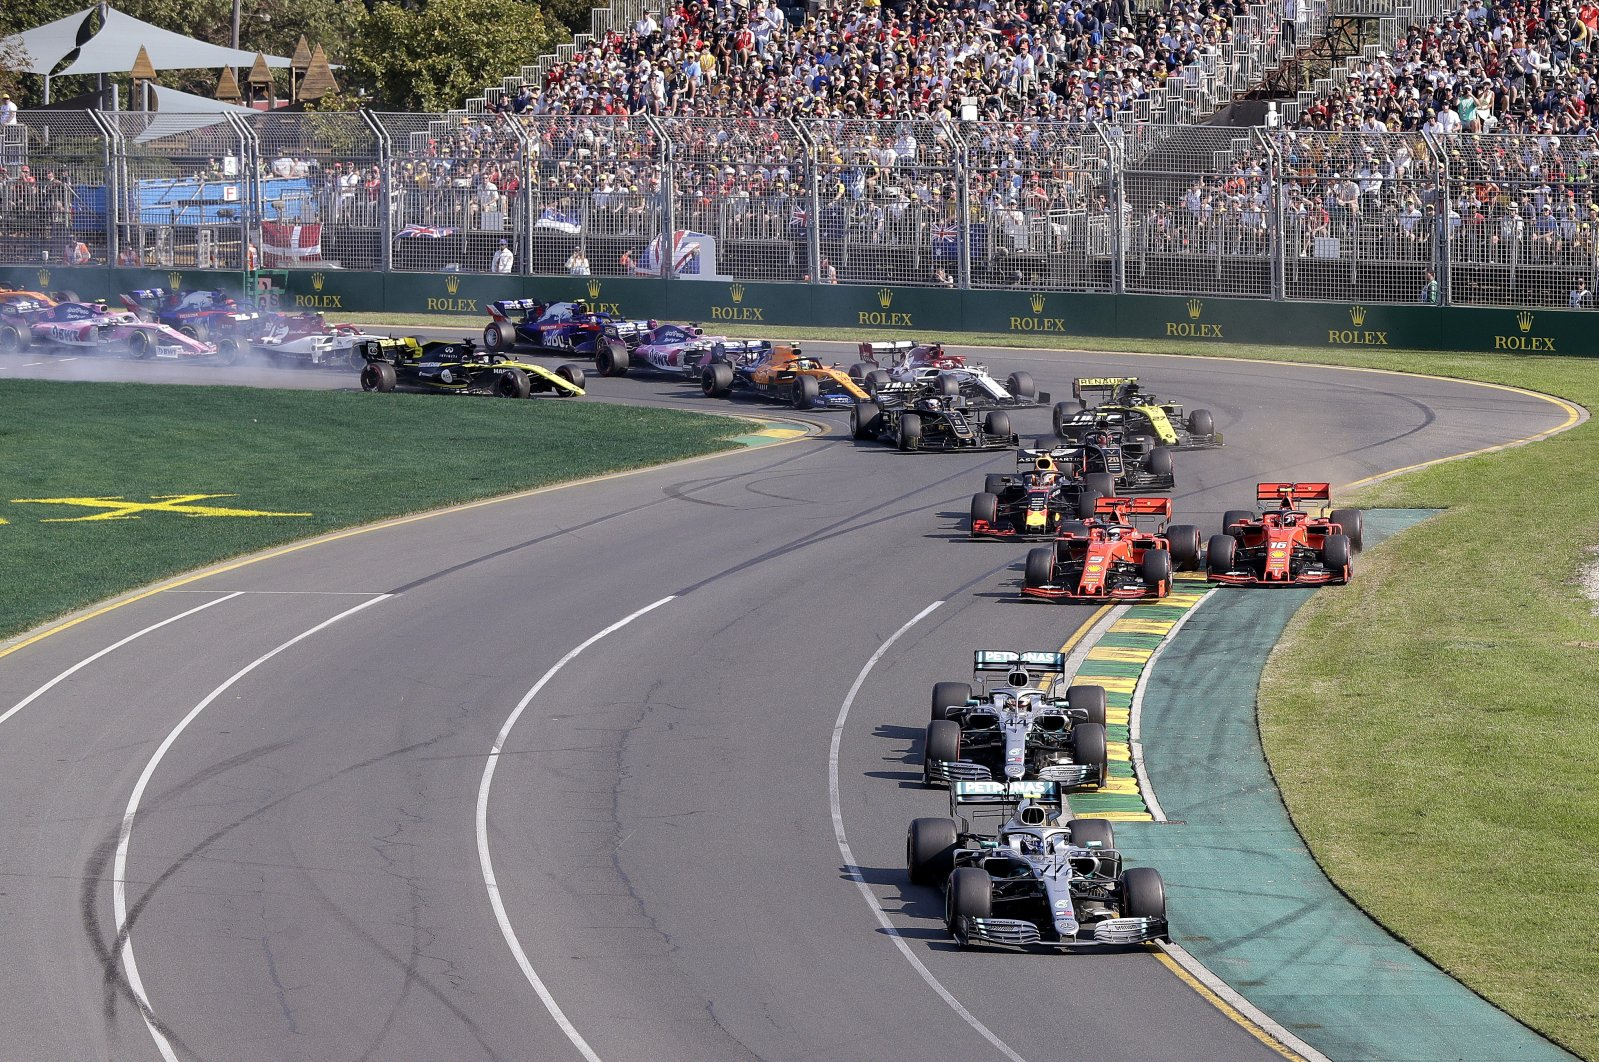 Mercedes driver Valtteri Bottas of Finland, bottom, leads the rest of the pack during the start of the F1 Australian Grand Prix in Melbourne, Australia, March 17, 2019. (AP Photo)